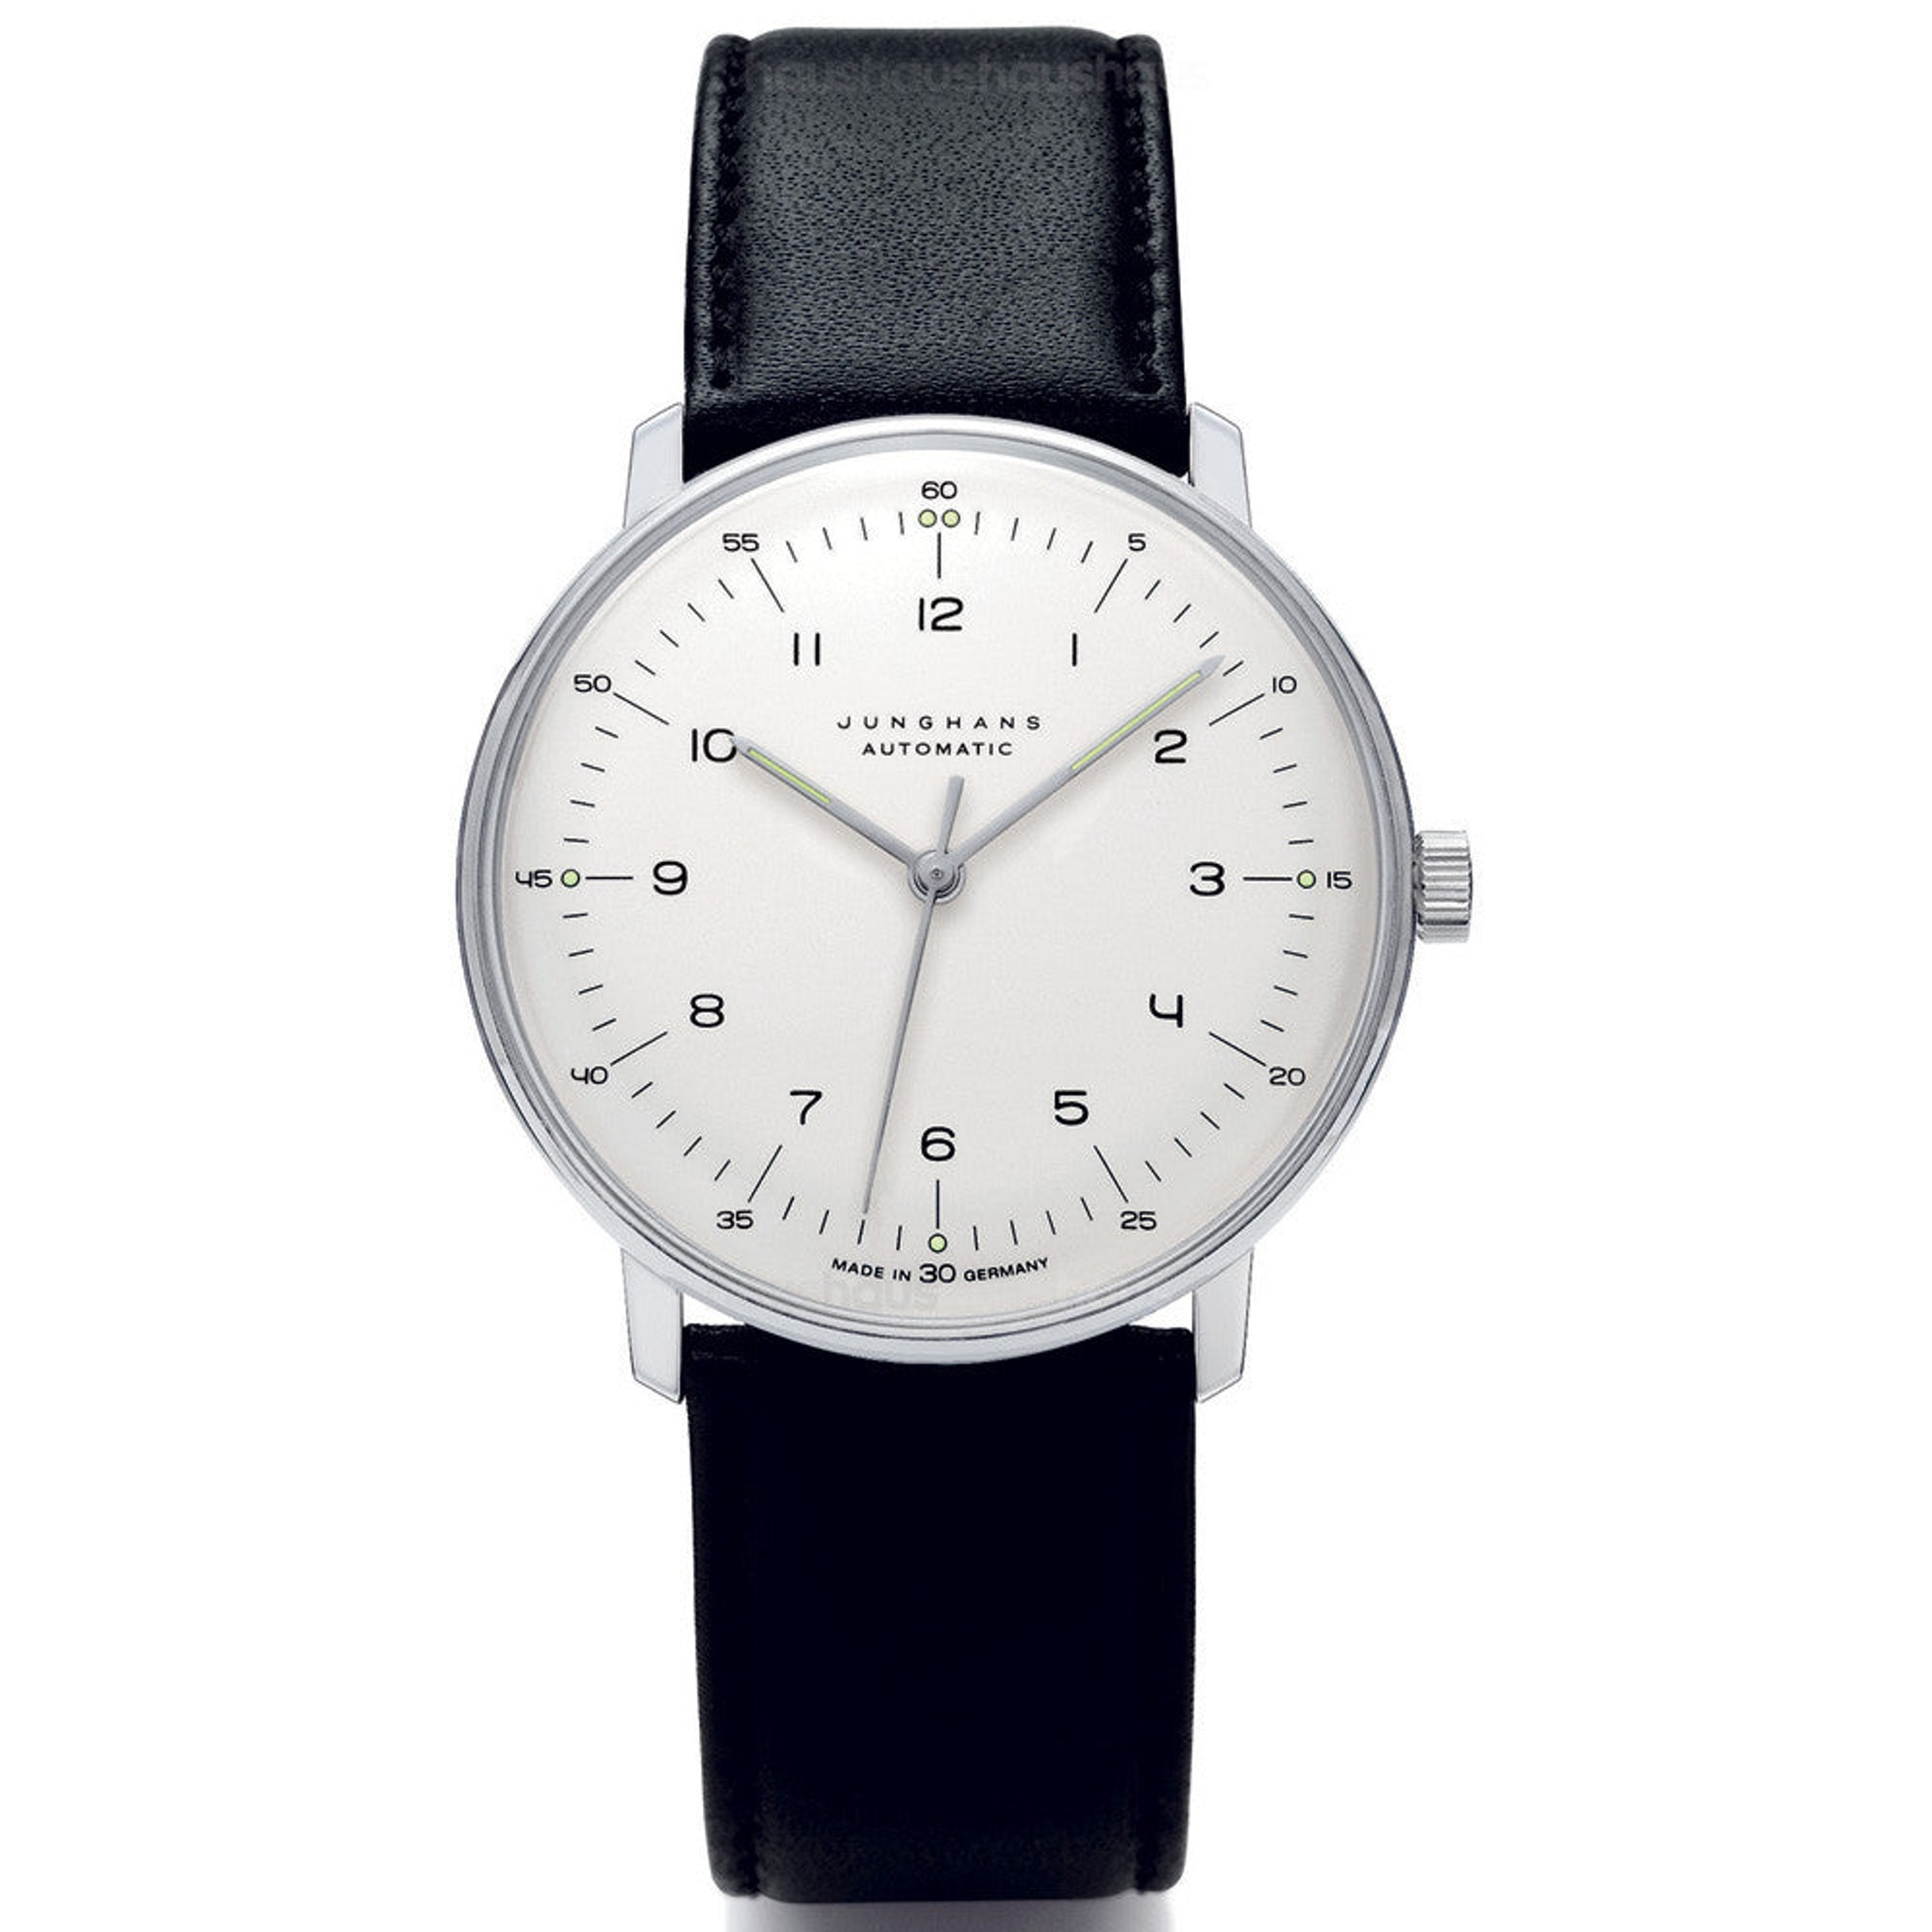 Max Bill 027/3500.00 Automatic watch by Junghans